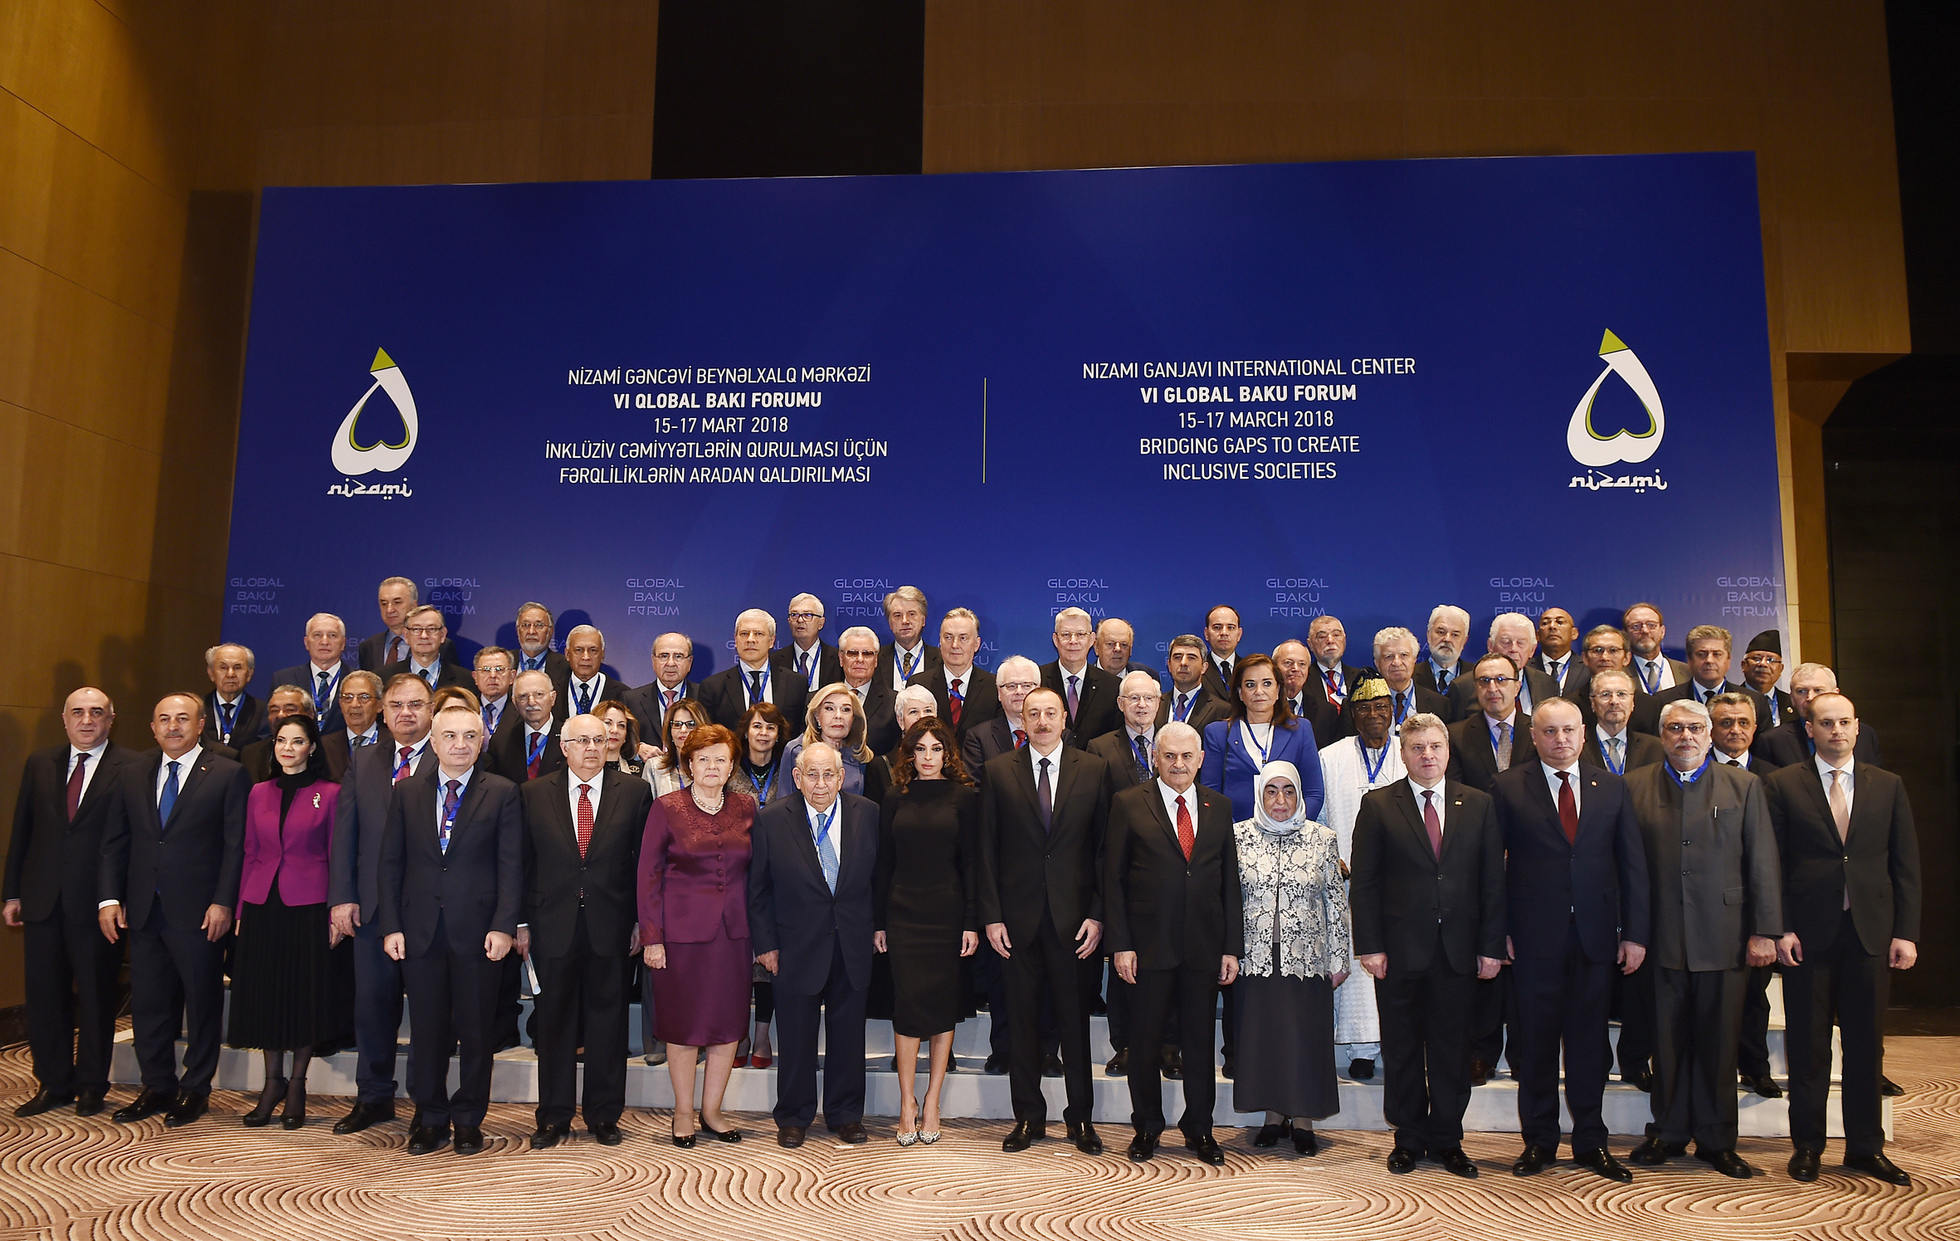 File:Ilham Aliyev attends opening ceremony of the 6th Global